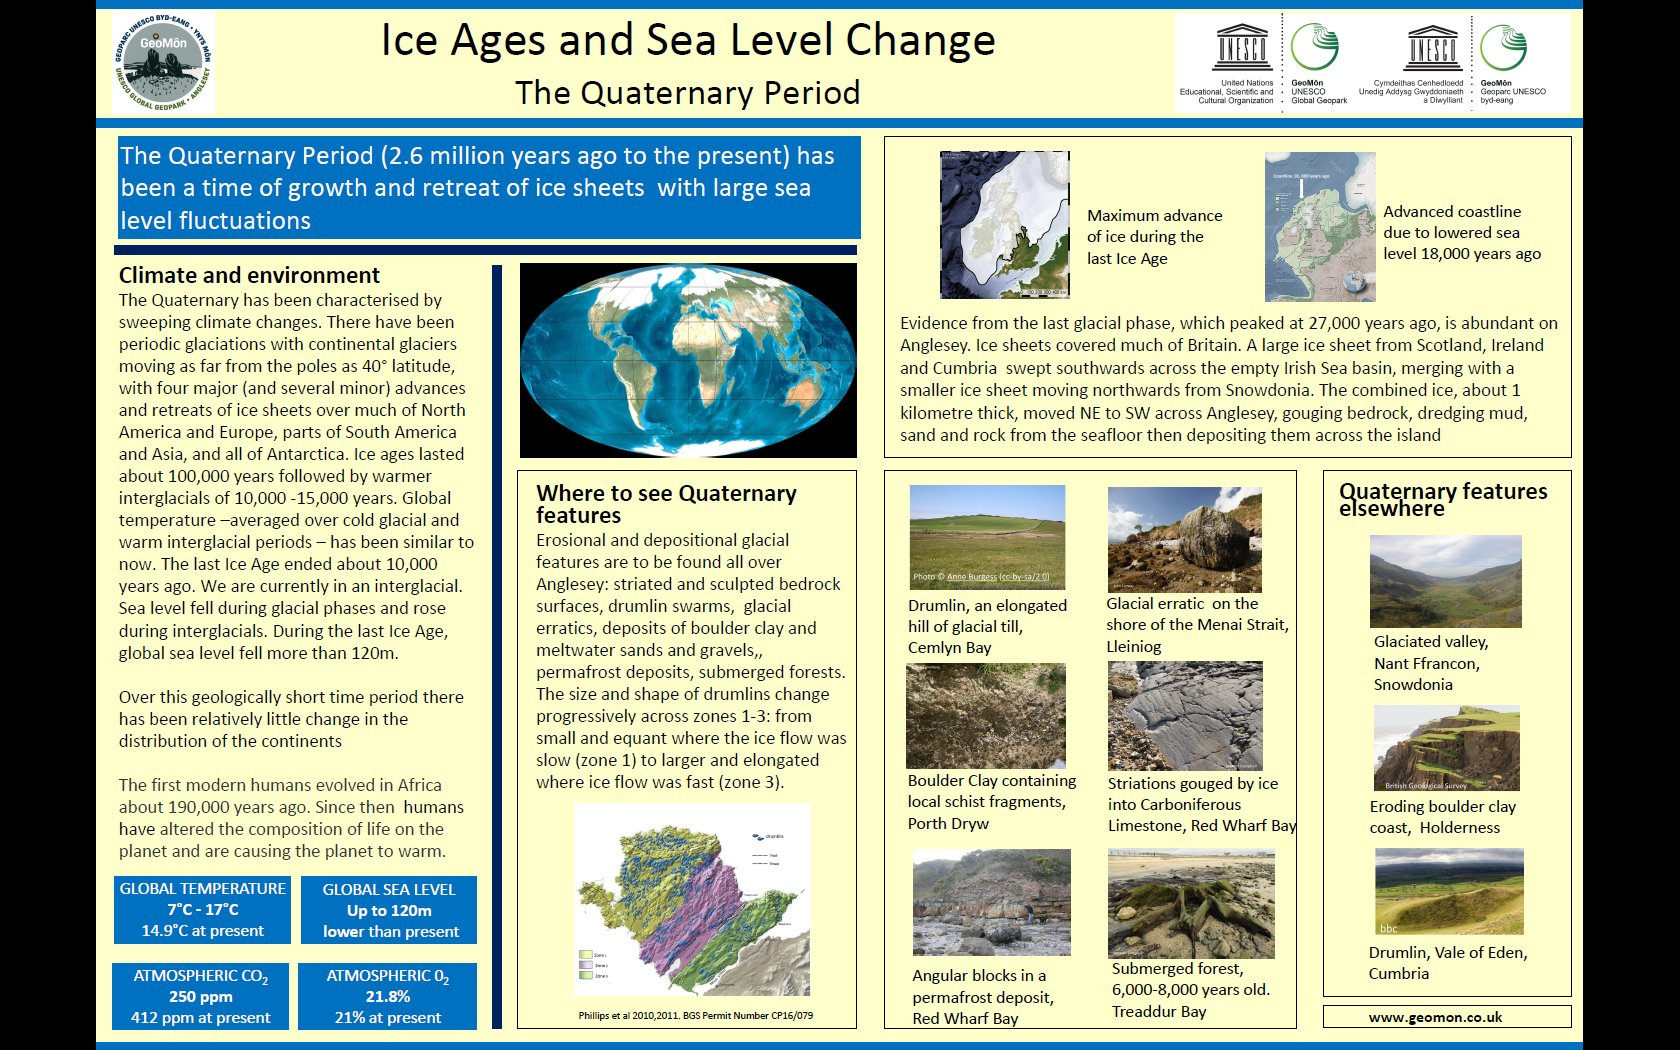 Poster showing geological conditions and climate in Quaternary times